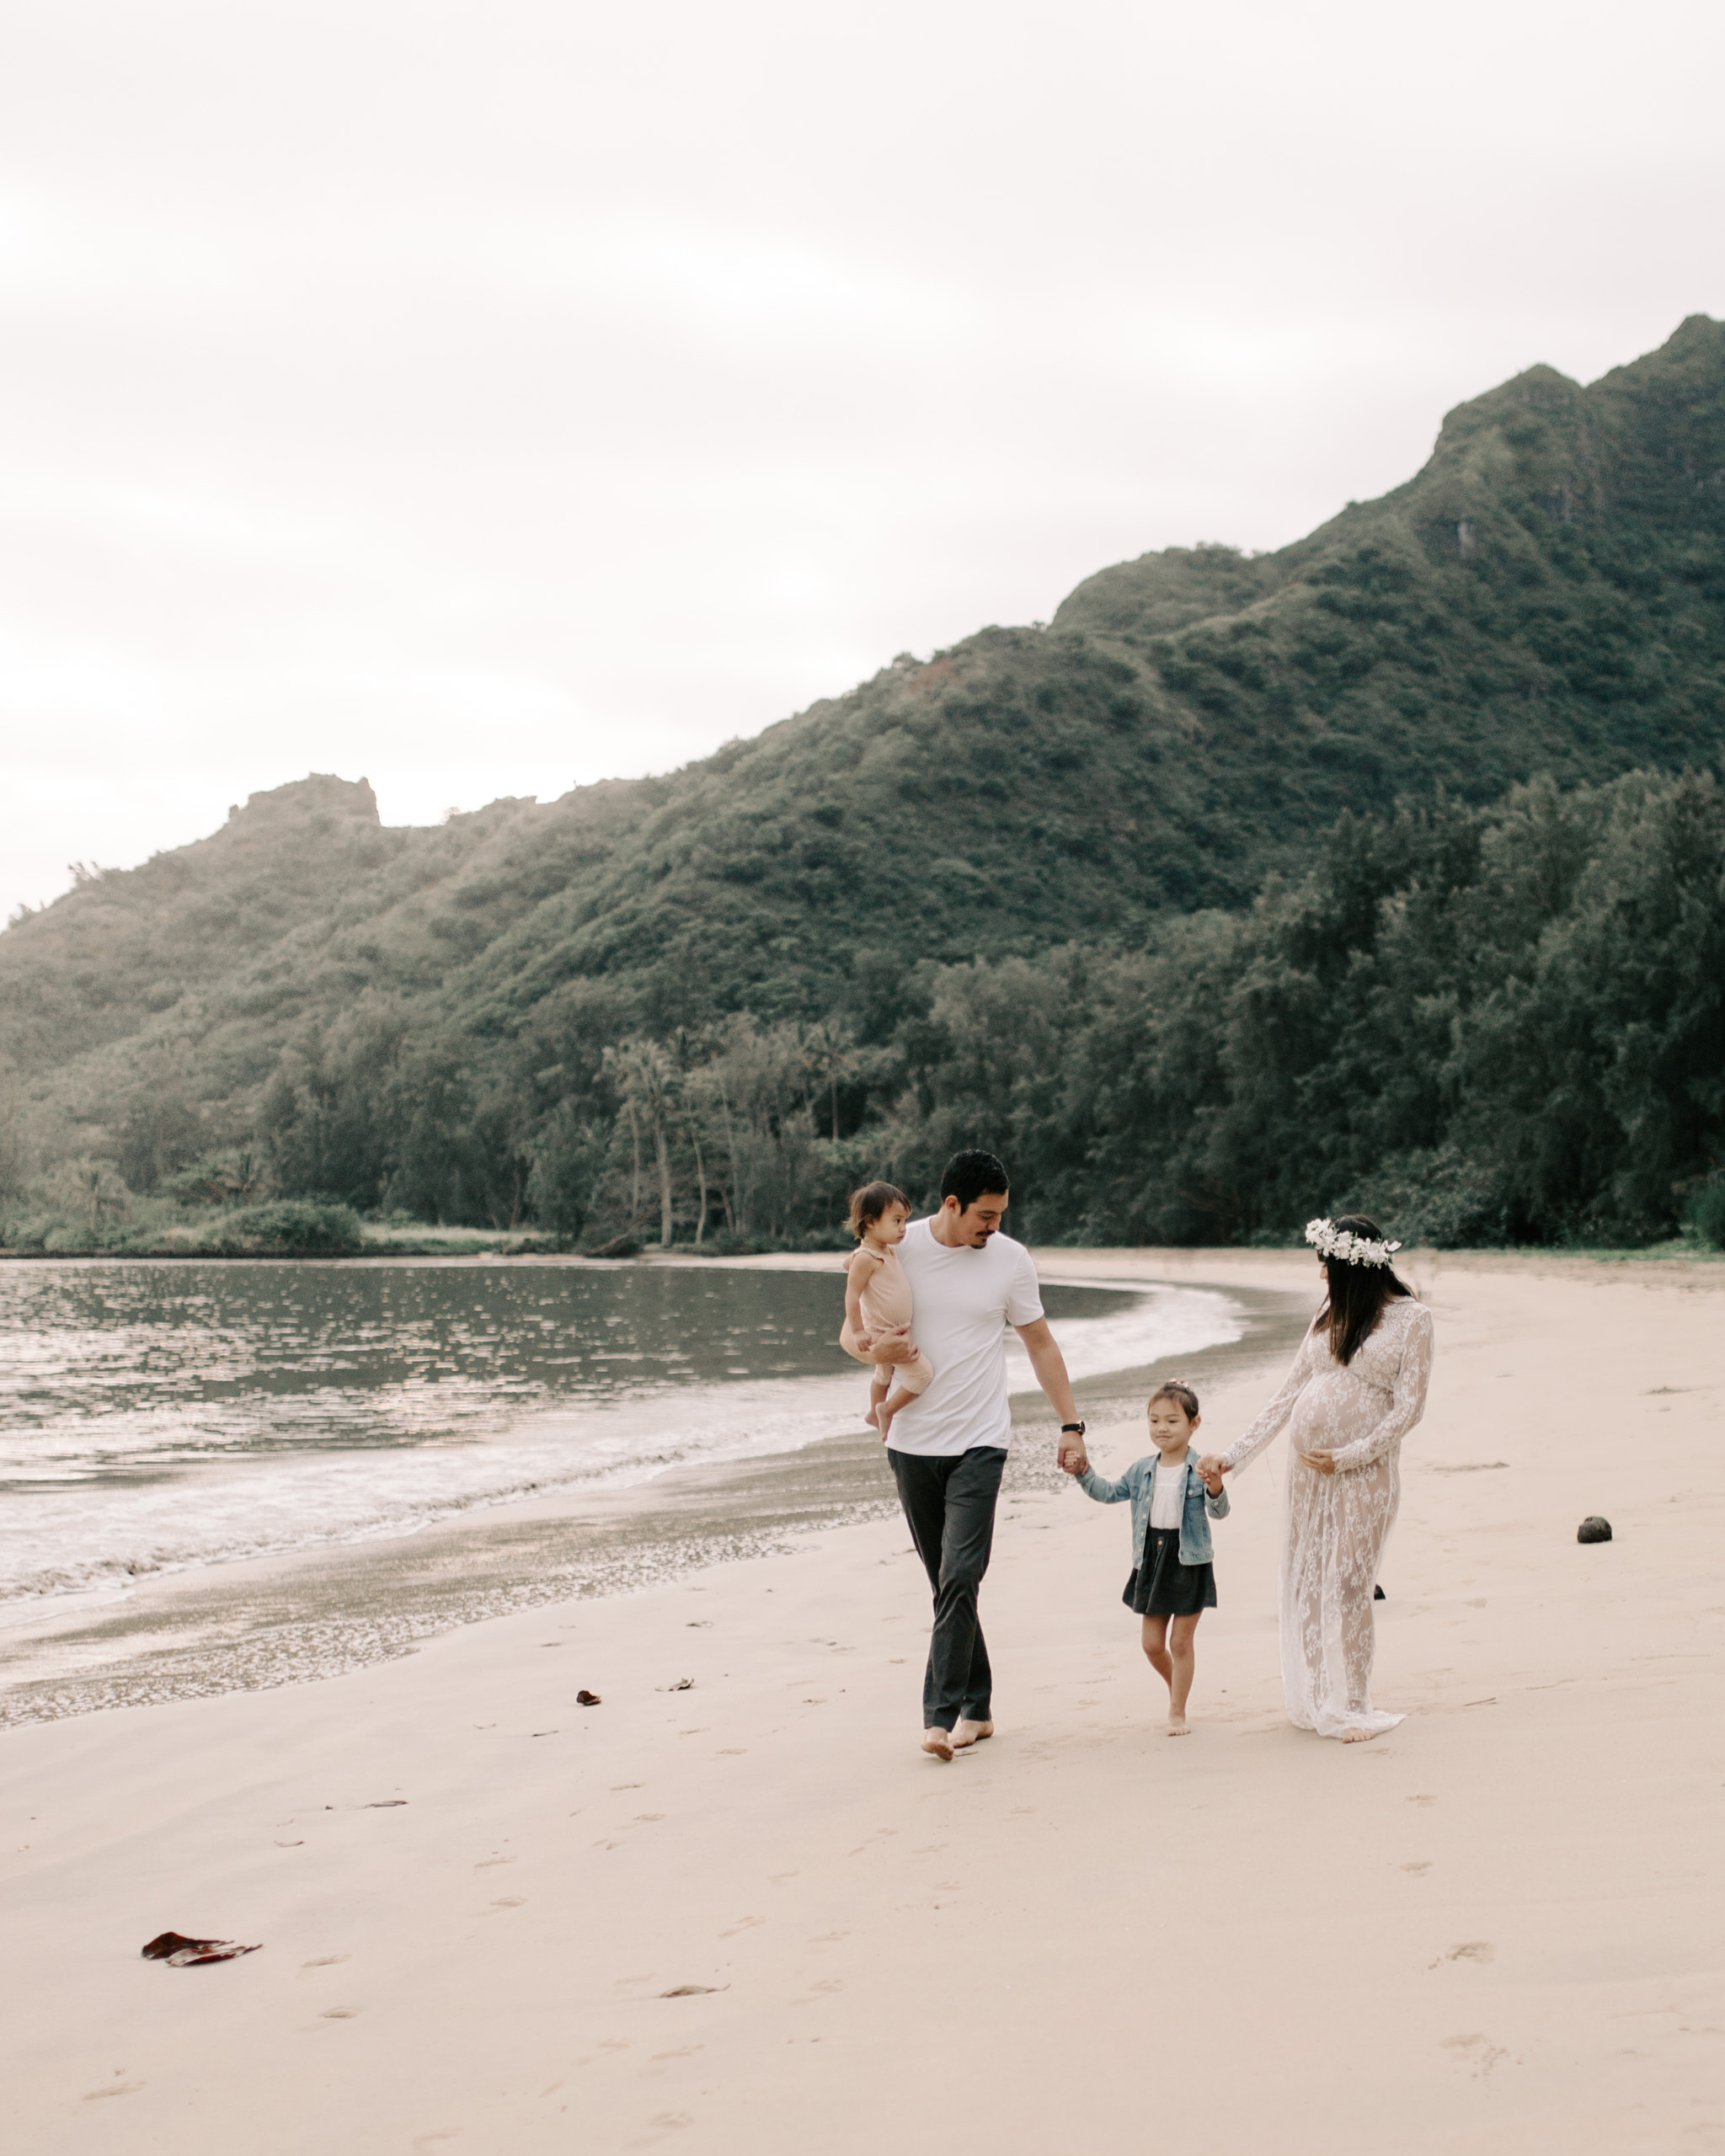 Whimsical Kahana Bay Family Session by Oahu Family Photographer Desiree Leilani